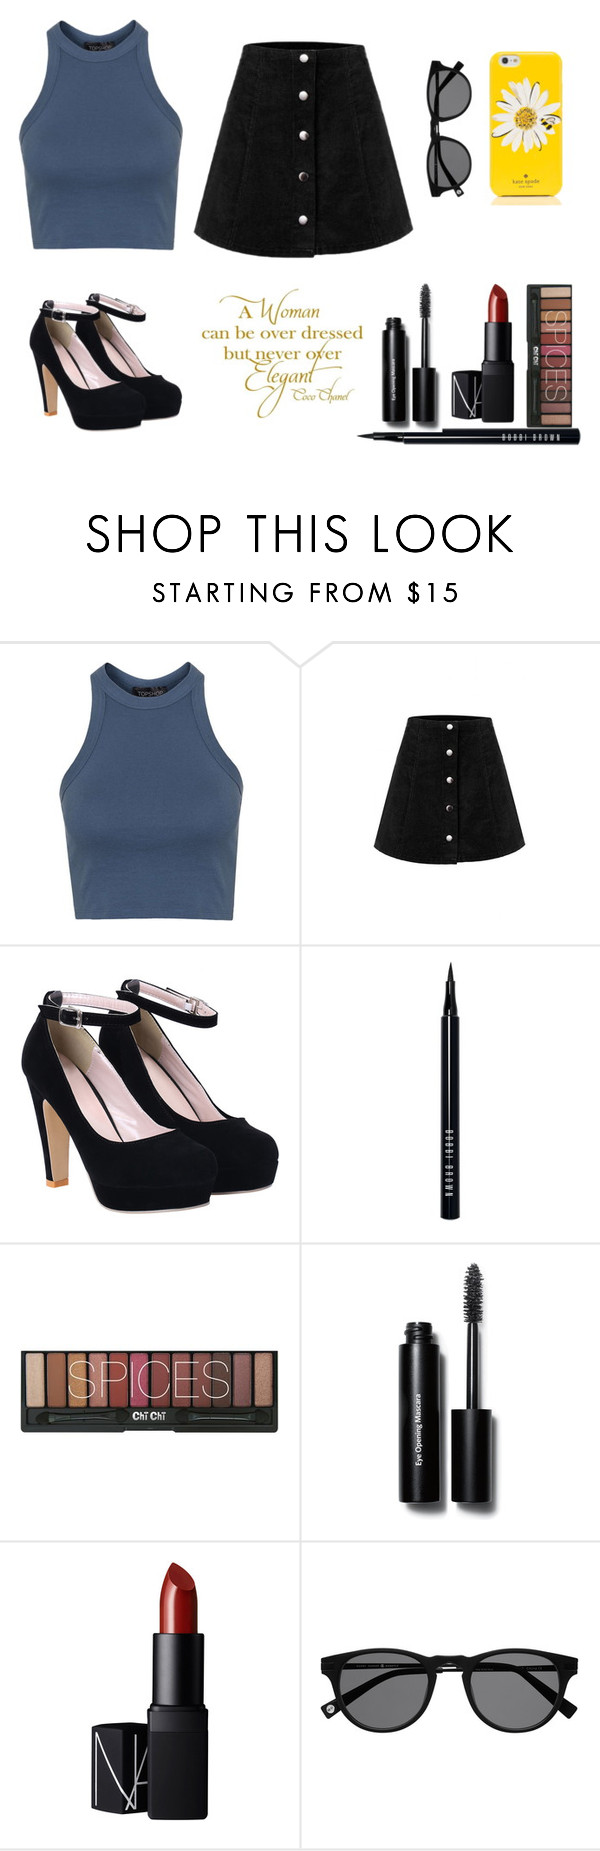 """""""Untitled #166"""" by laurelmae ❤ liked on Polyvore featuring Topshop, Bobbi Brown Cosmetics, NARS Cosmetics, Kate Spade and Chanel"""